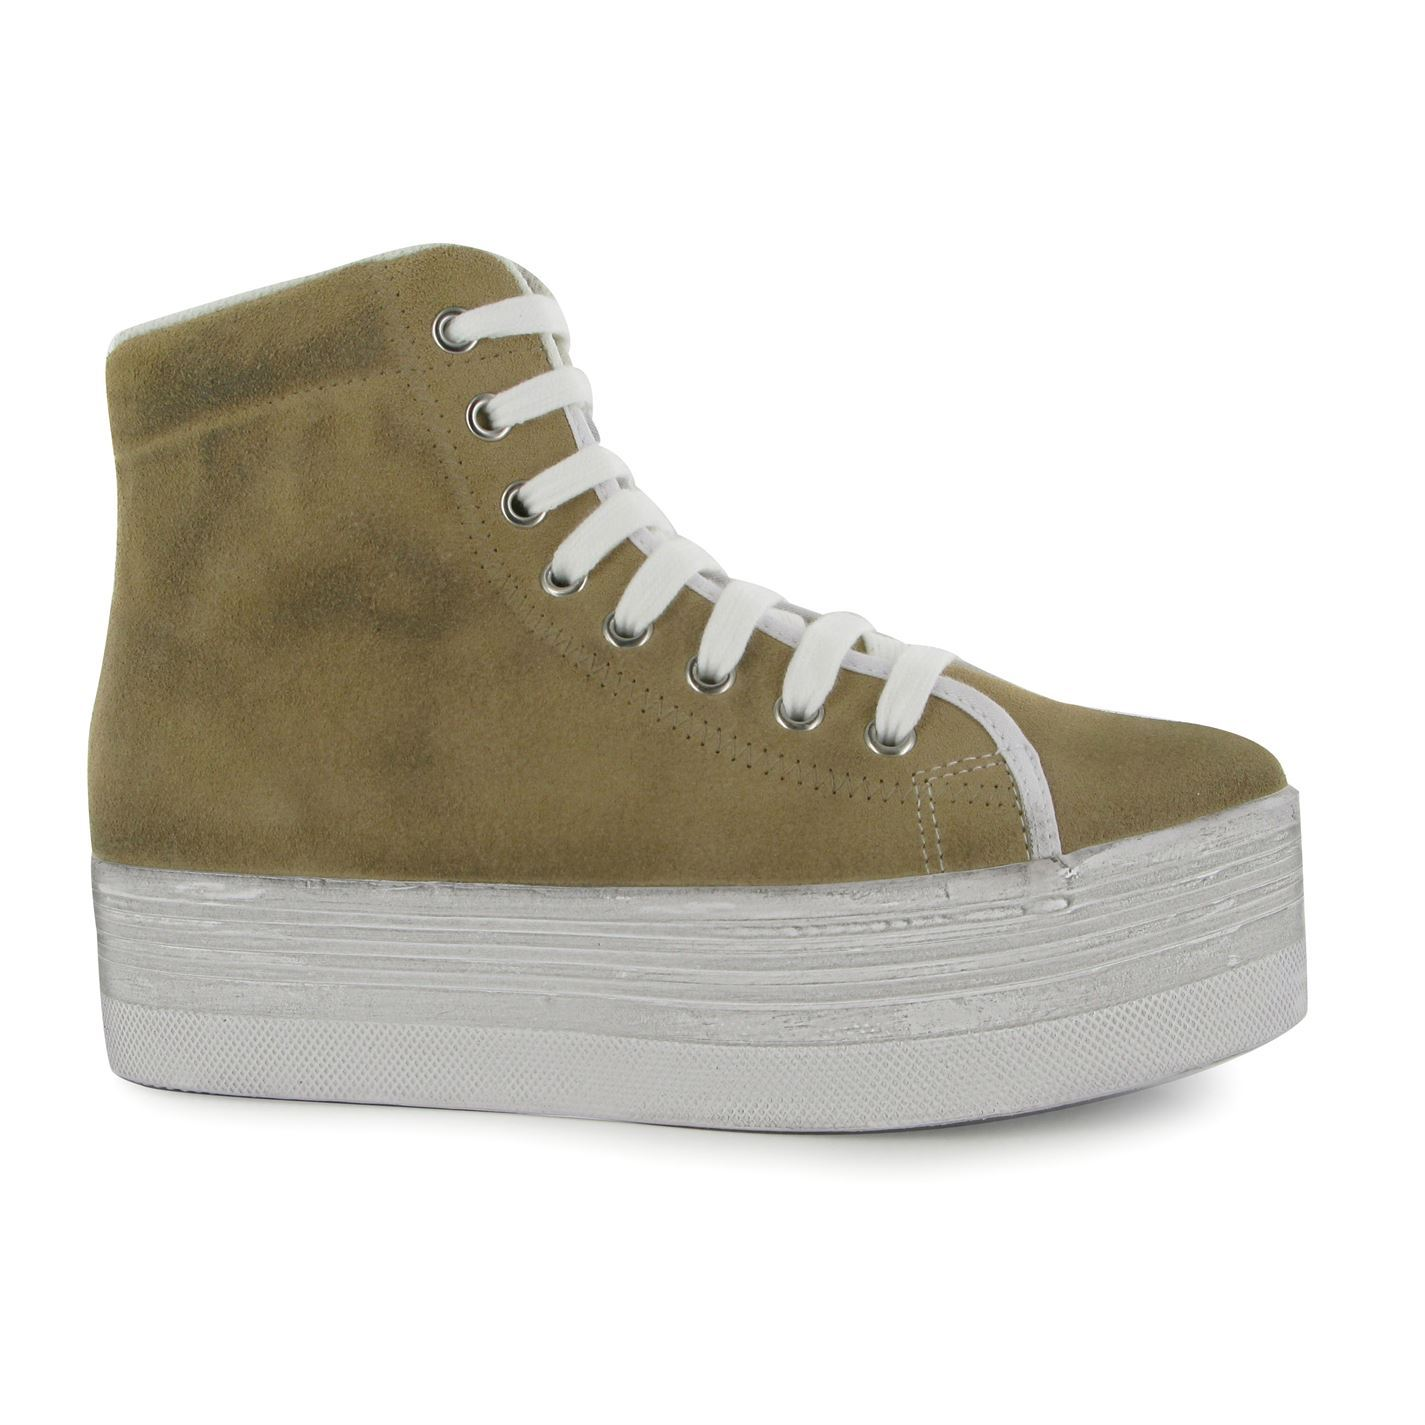 Jeffrey Campbell hOMG Hi Tops Platform shoes Womens Sand White Trainers Sneakers